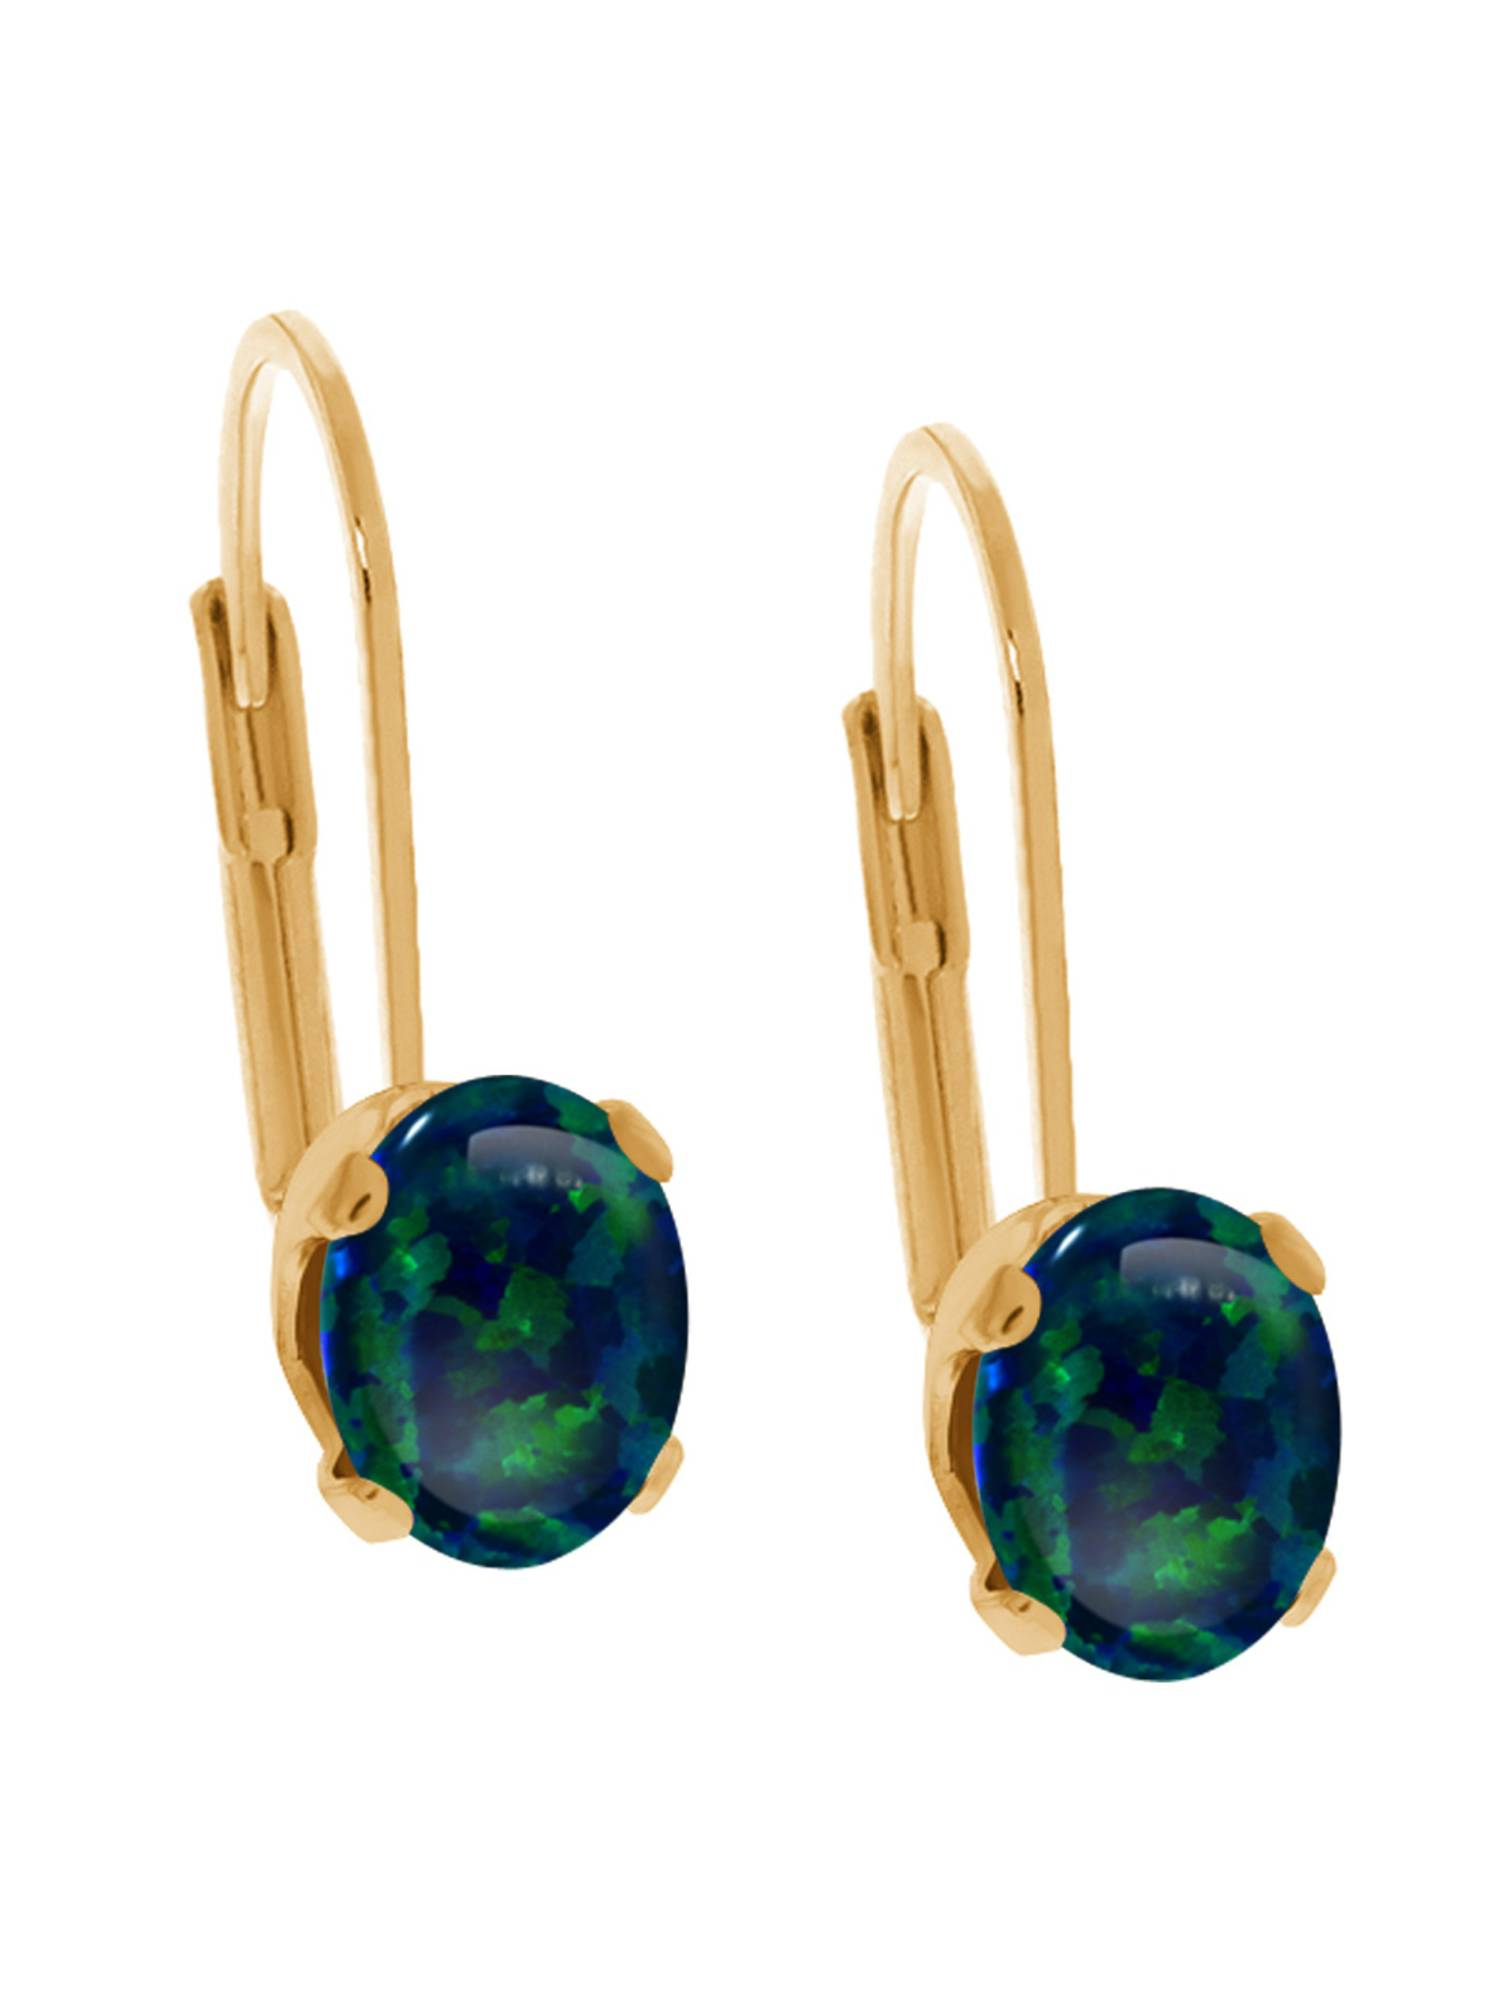 1.00 Ct Oval Cabochon Green Simulated Opal 14K Yellow Gold Earrings by